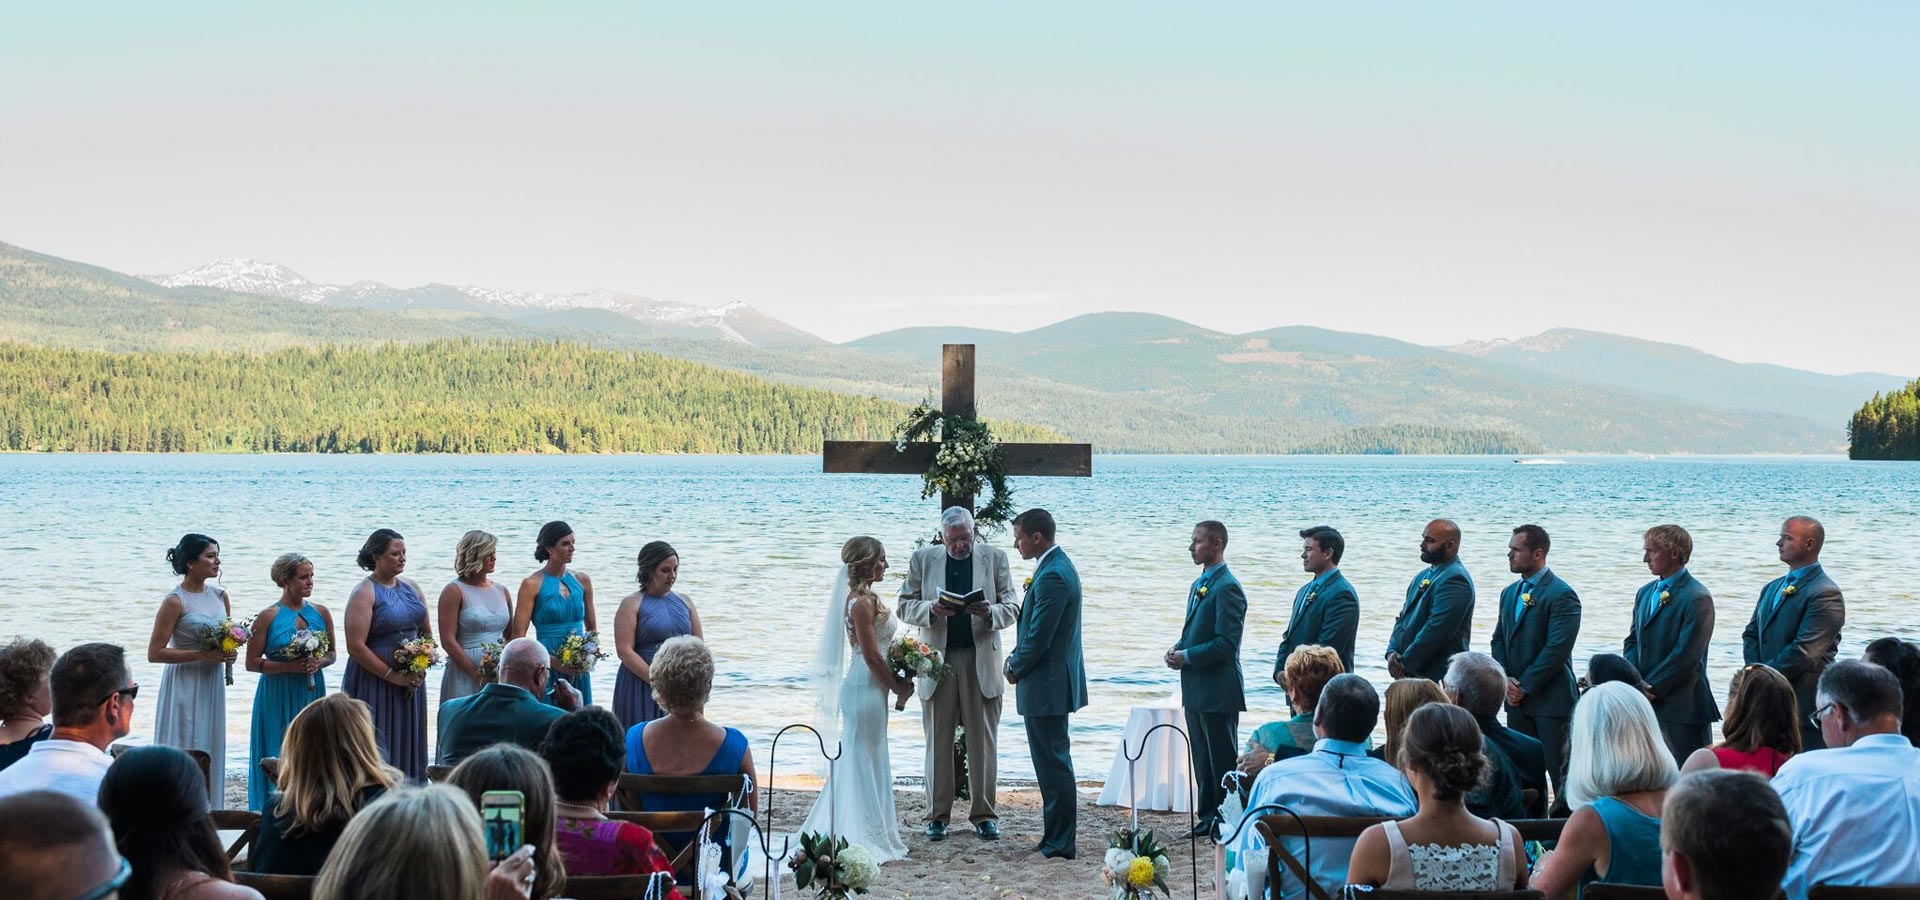 The Most Affordable Places to Get Married in the US - Idaho